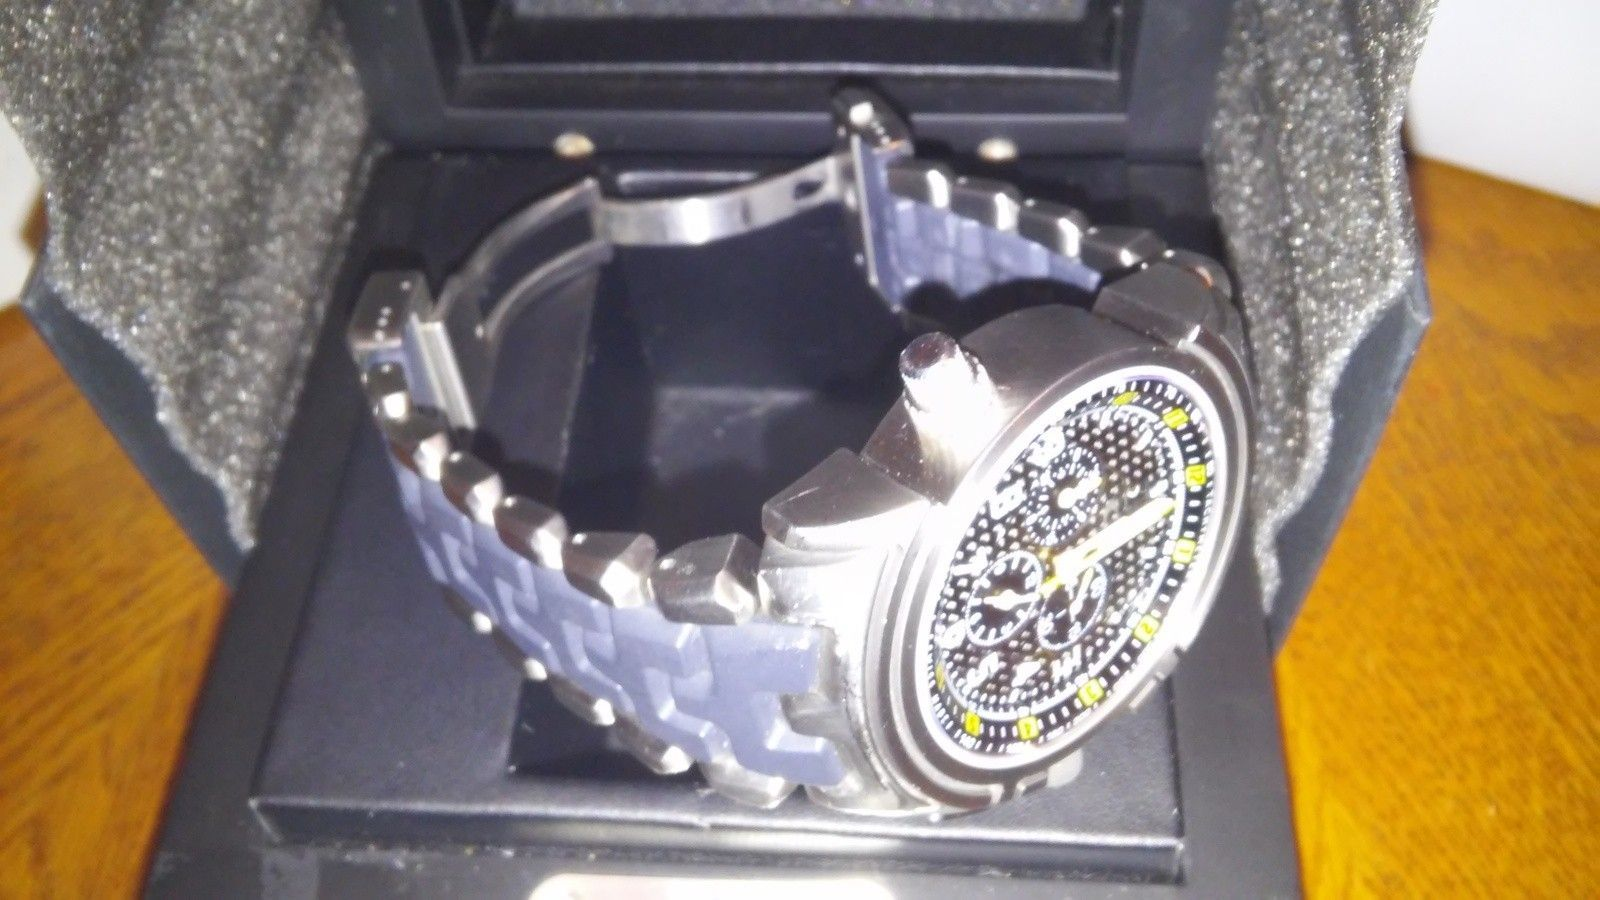 12 gauge titanium/carbon fiber watch - 20150323_153339.jpg